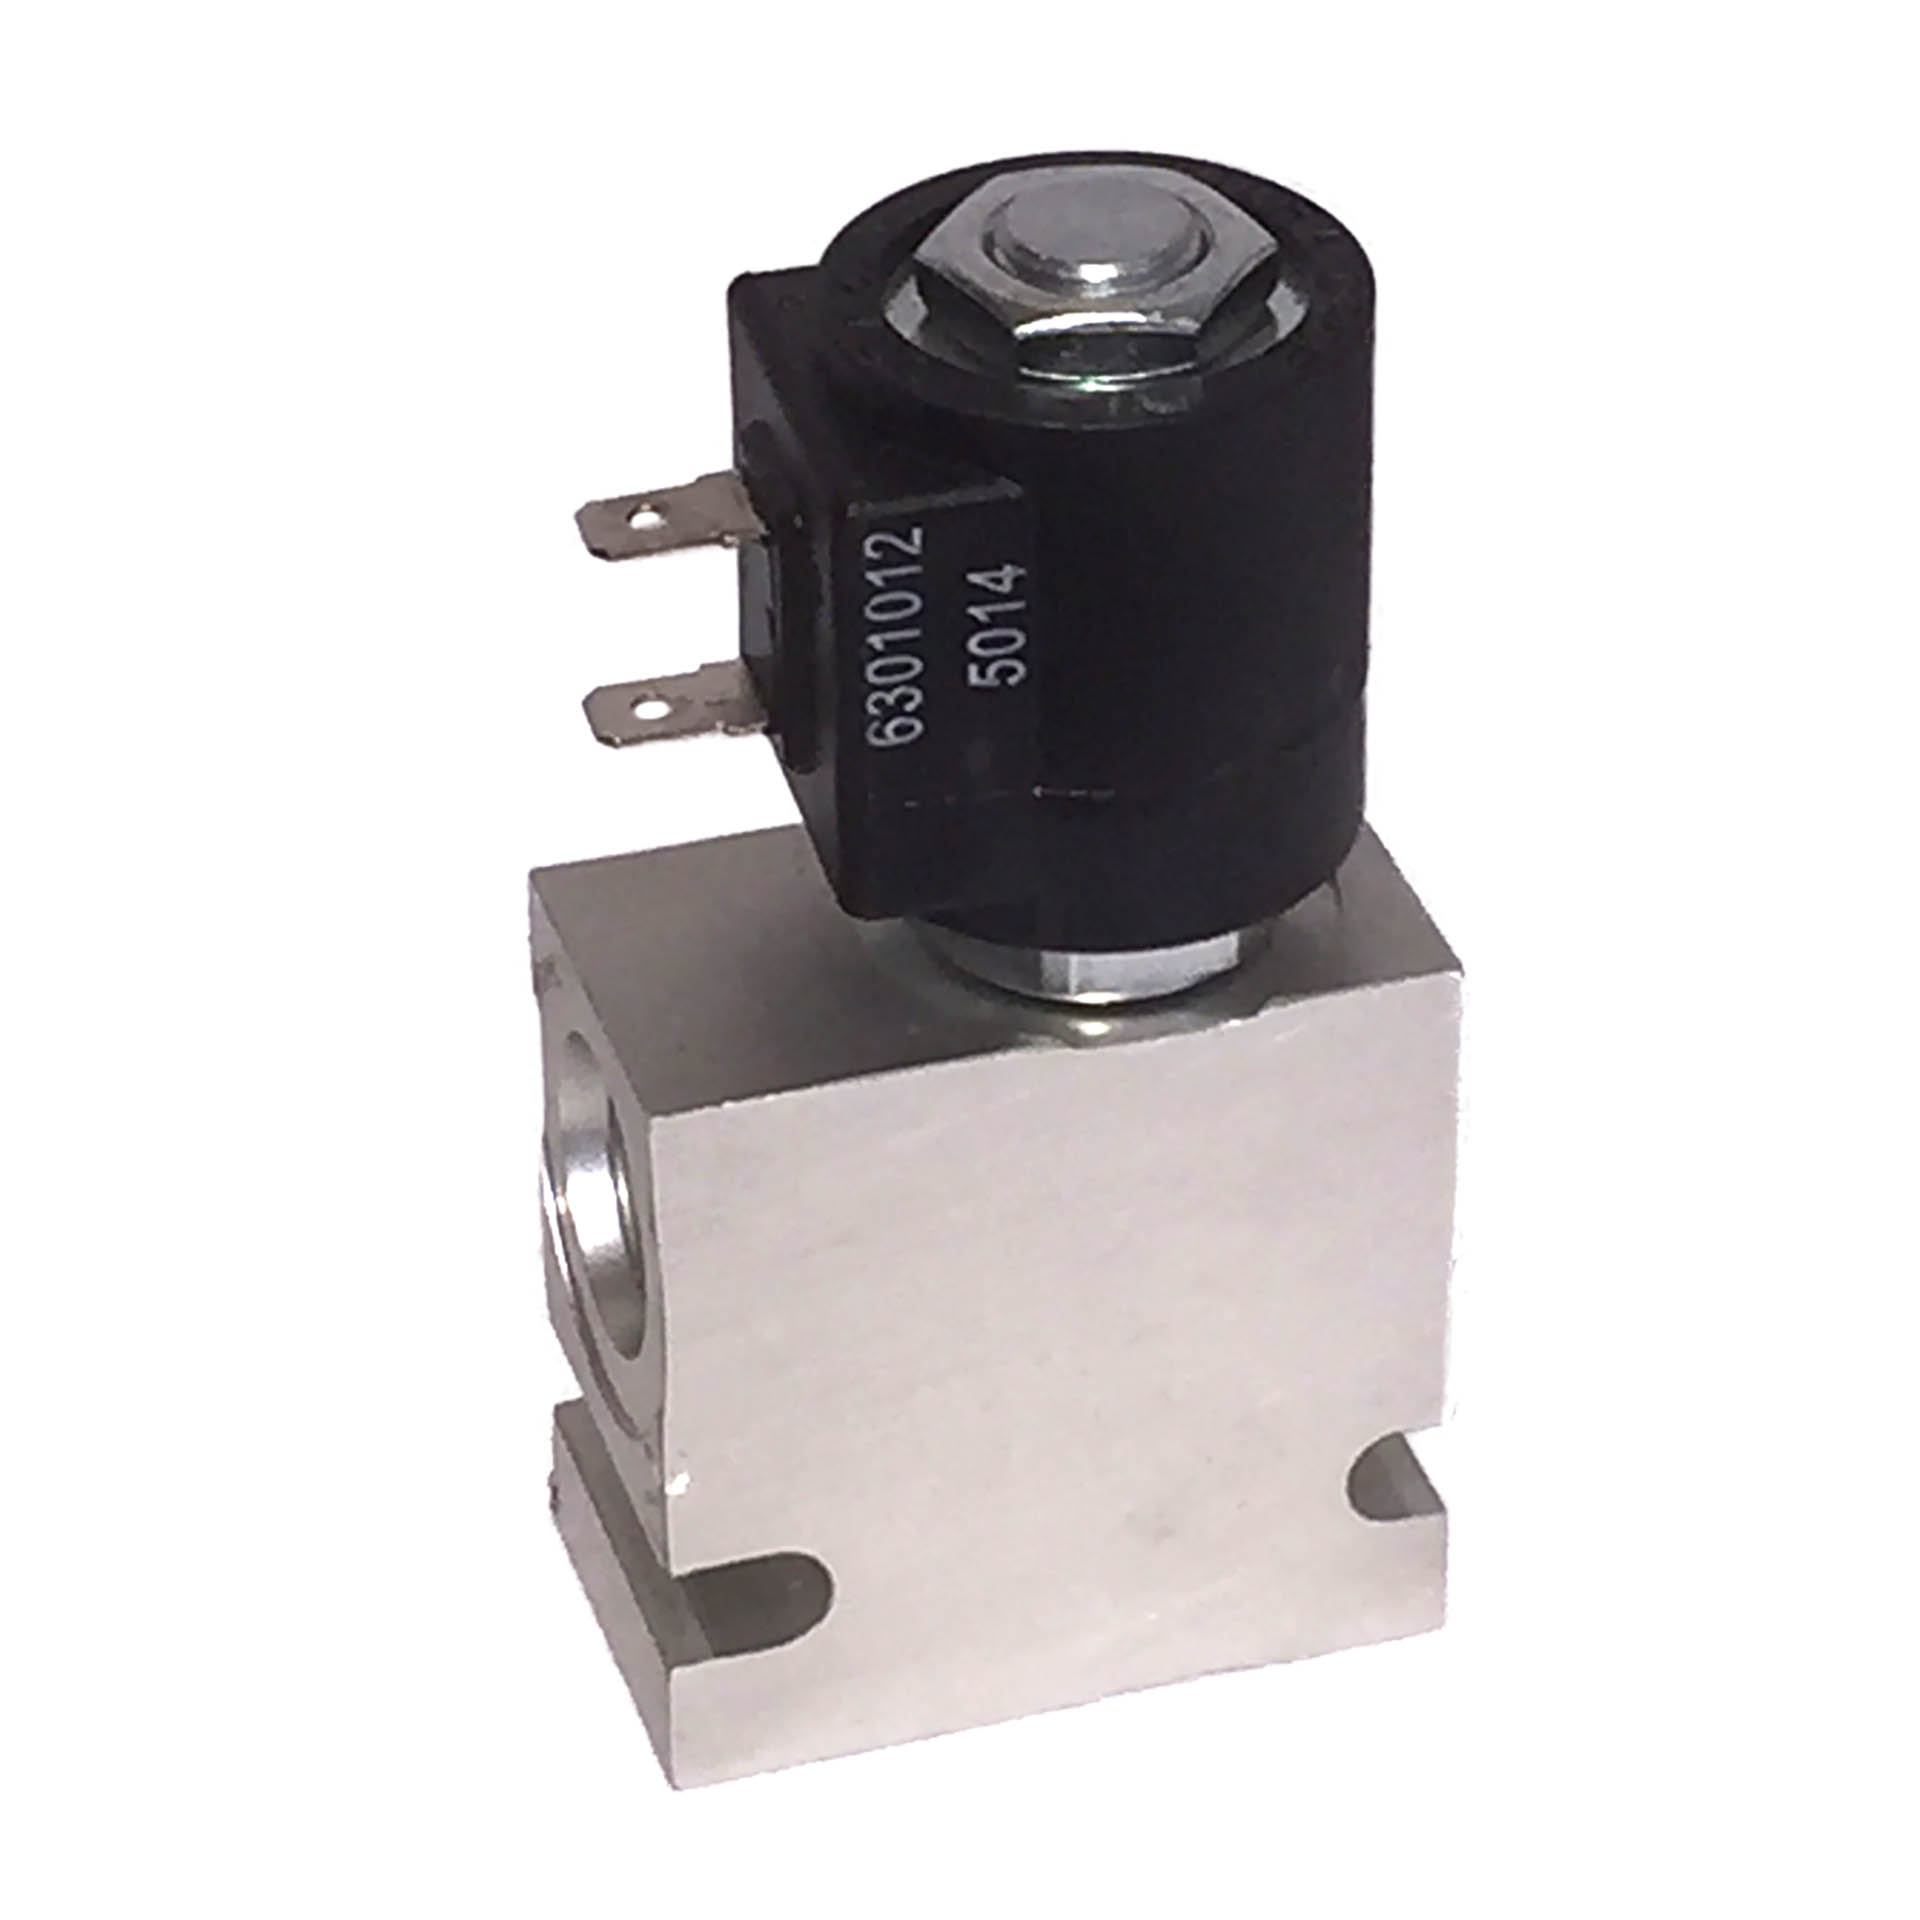 Hydraulic Controls Parts : Buy hydraulic control valve online at access truck parts